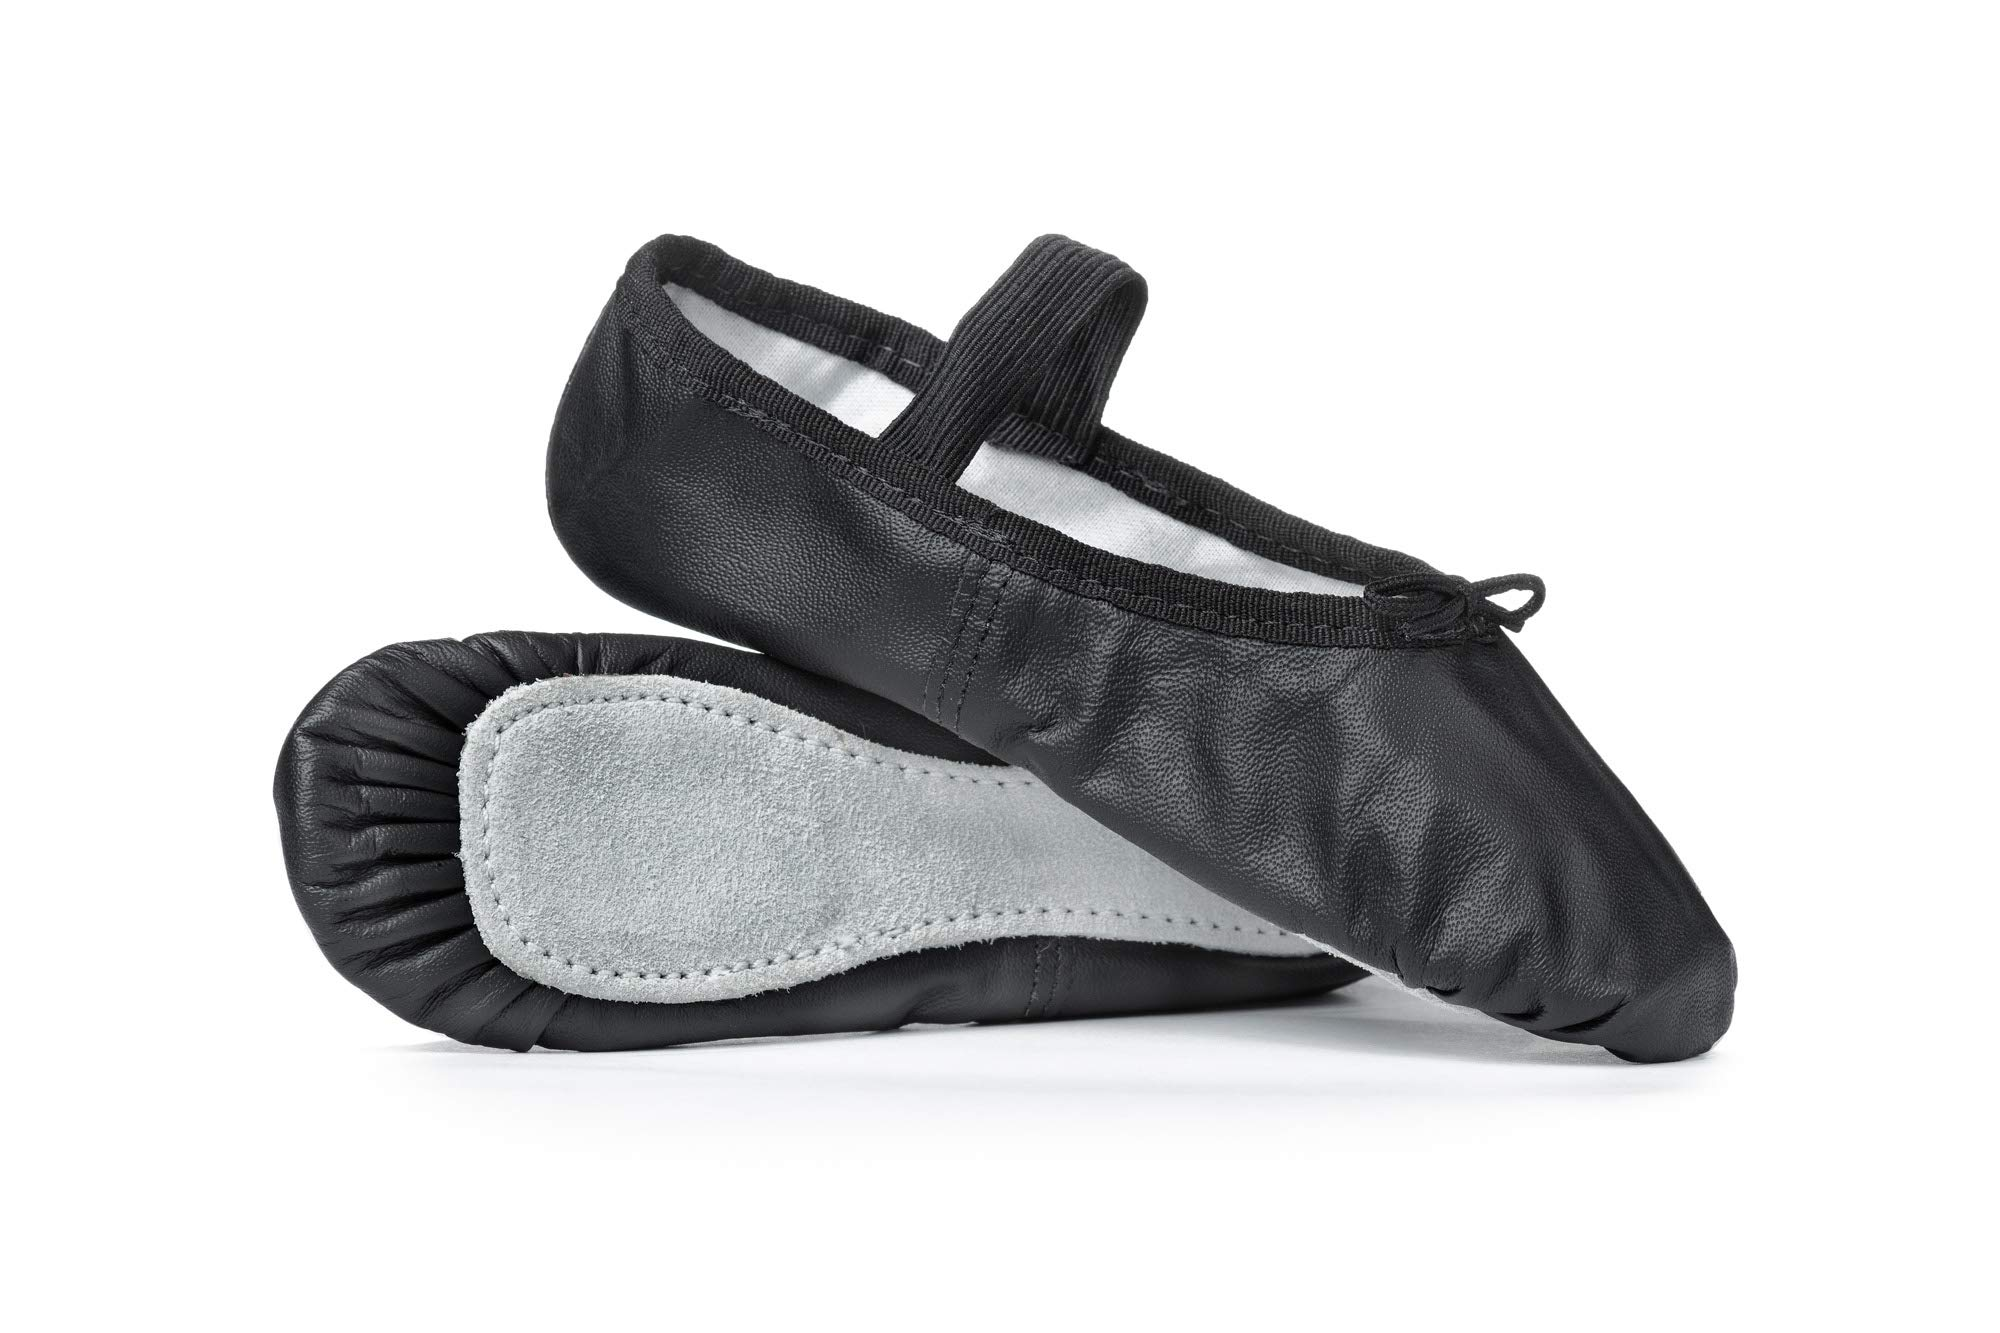 Child Economy Leather Full Sole Ballet Shoes T1000CBLK10.5M Black 10.5 M US Little Kid by Theatricals